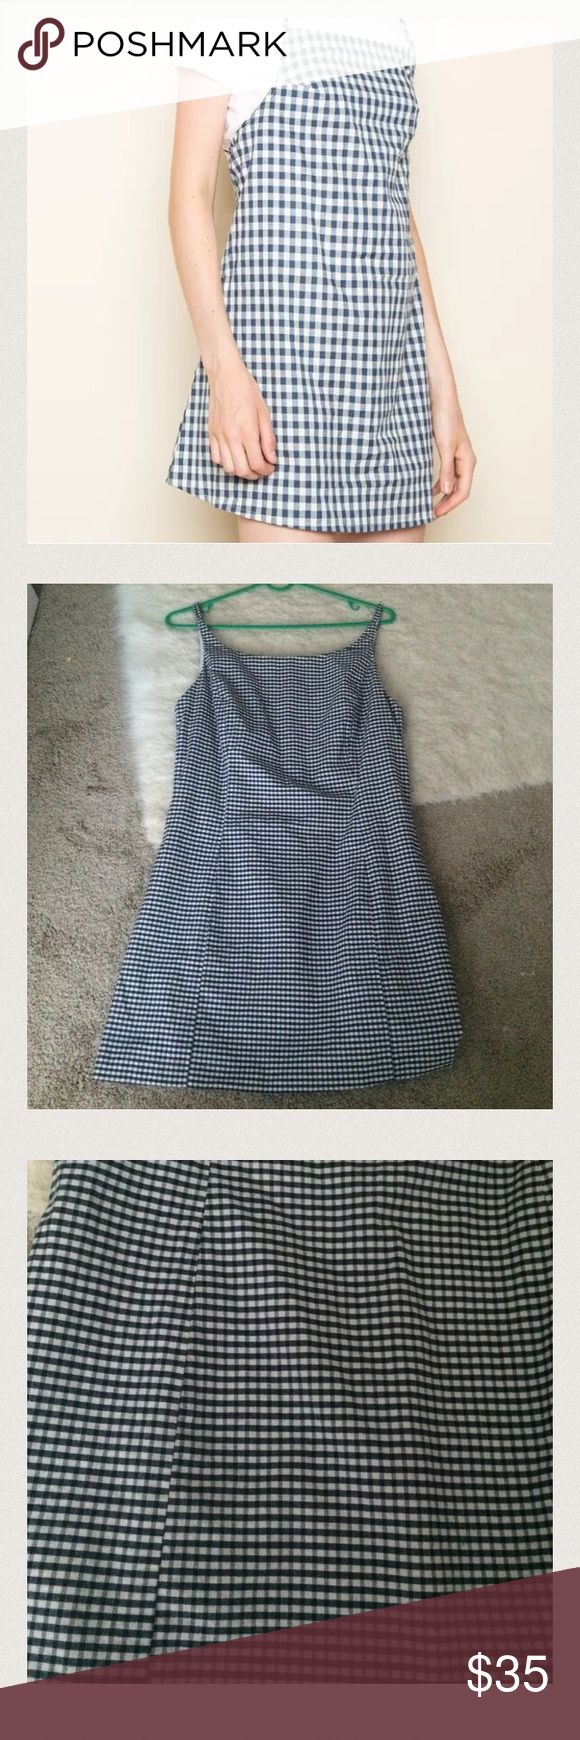 Vintage gingham dress Was altered to fit smaller. I am a size 26 and this fits!! Urban Outfitters Dresses Mini